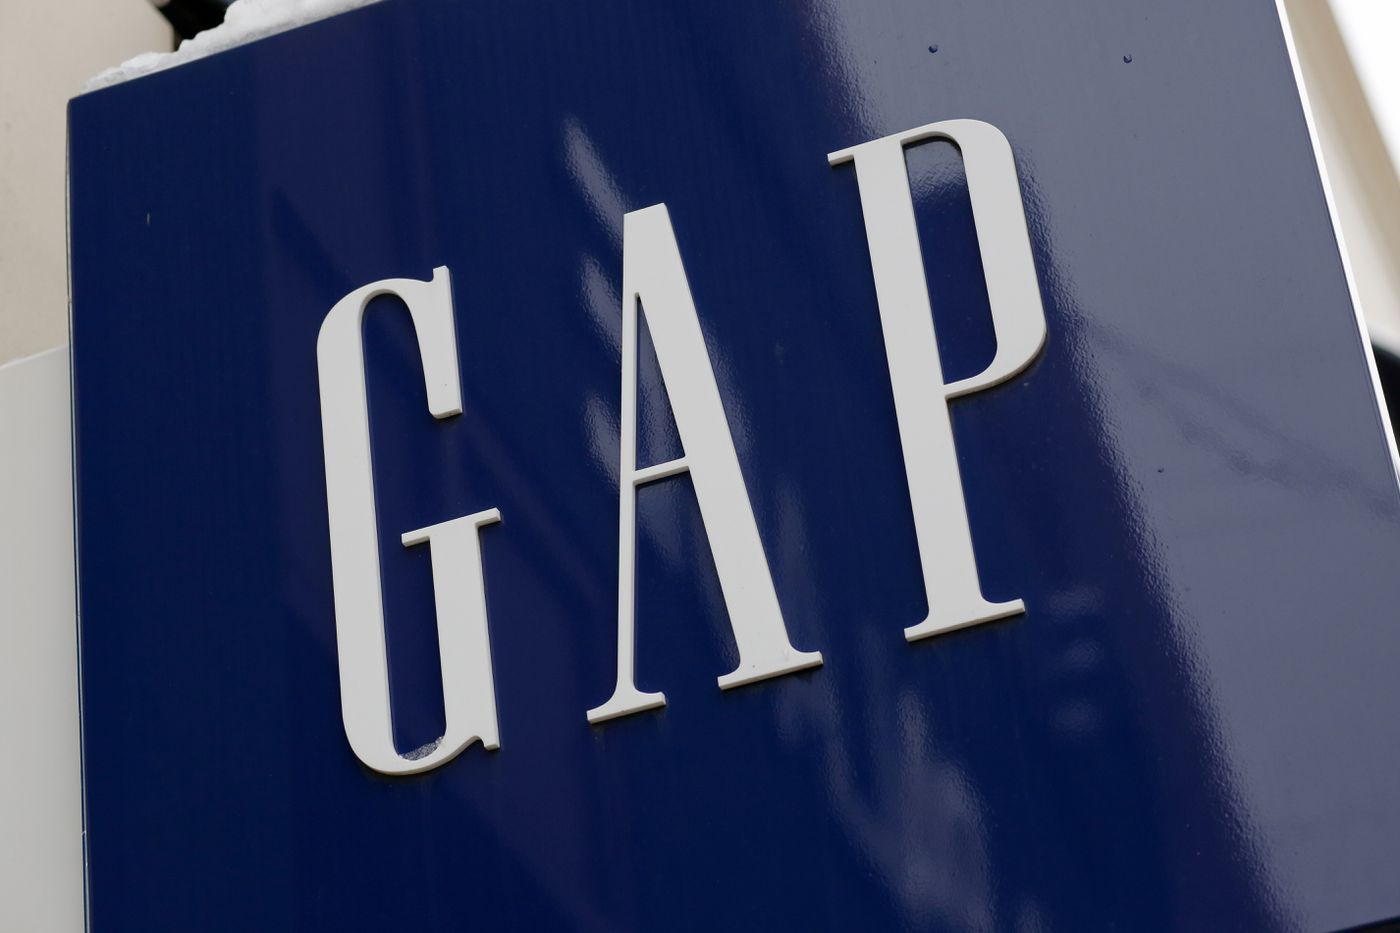 FILE - This Feb. 10, 2017 file photo shows the sign on a Gap store in the Shadyside shopping district of Pittsburgh. (AP Photo/Gene J. Puskar, File)